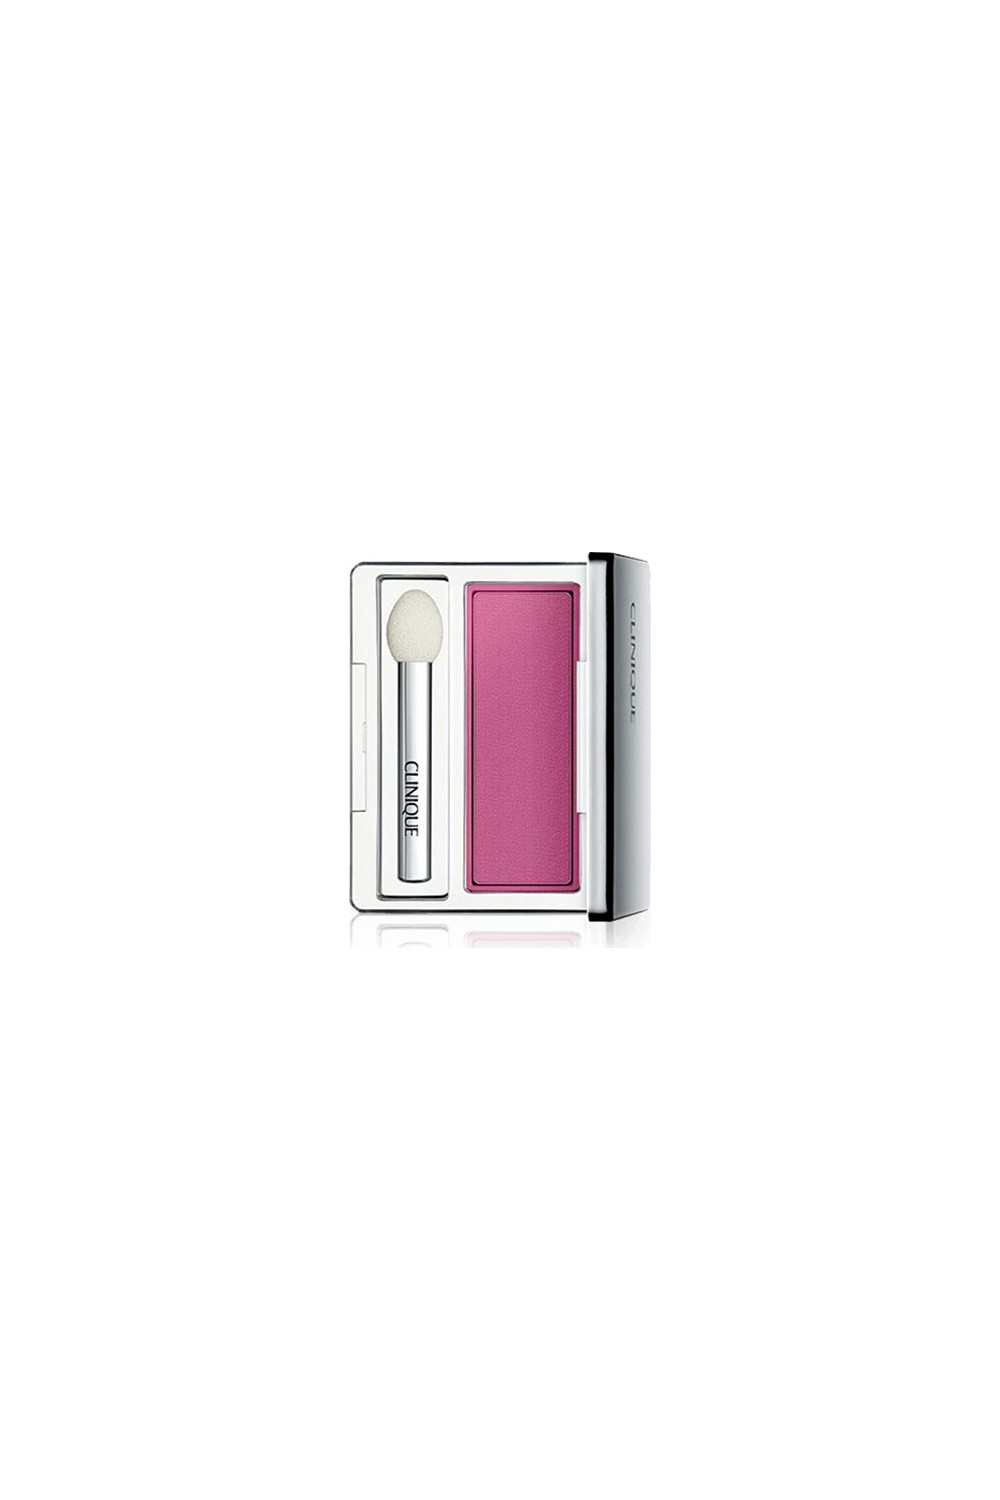 Clinique Eyeshadow Compact Raspberry 2.2 g Beter